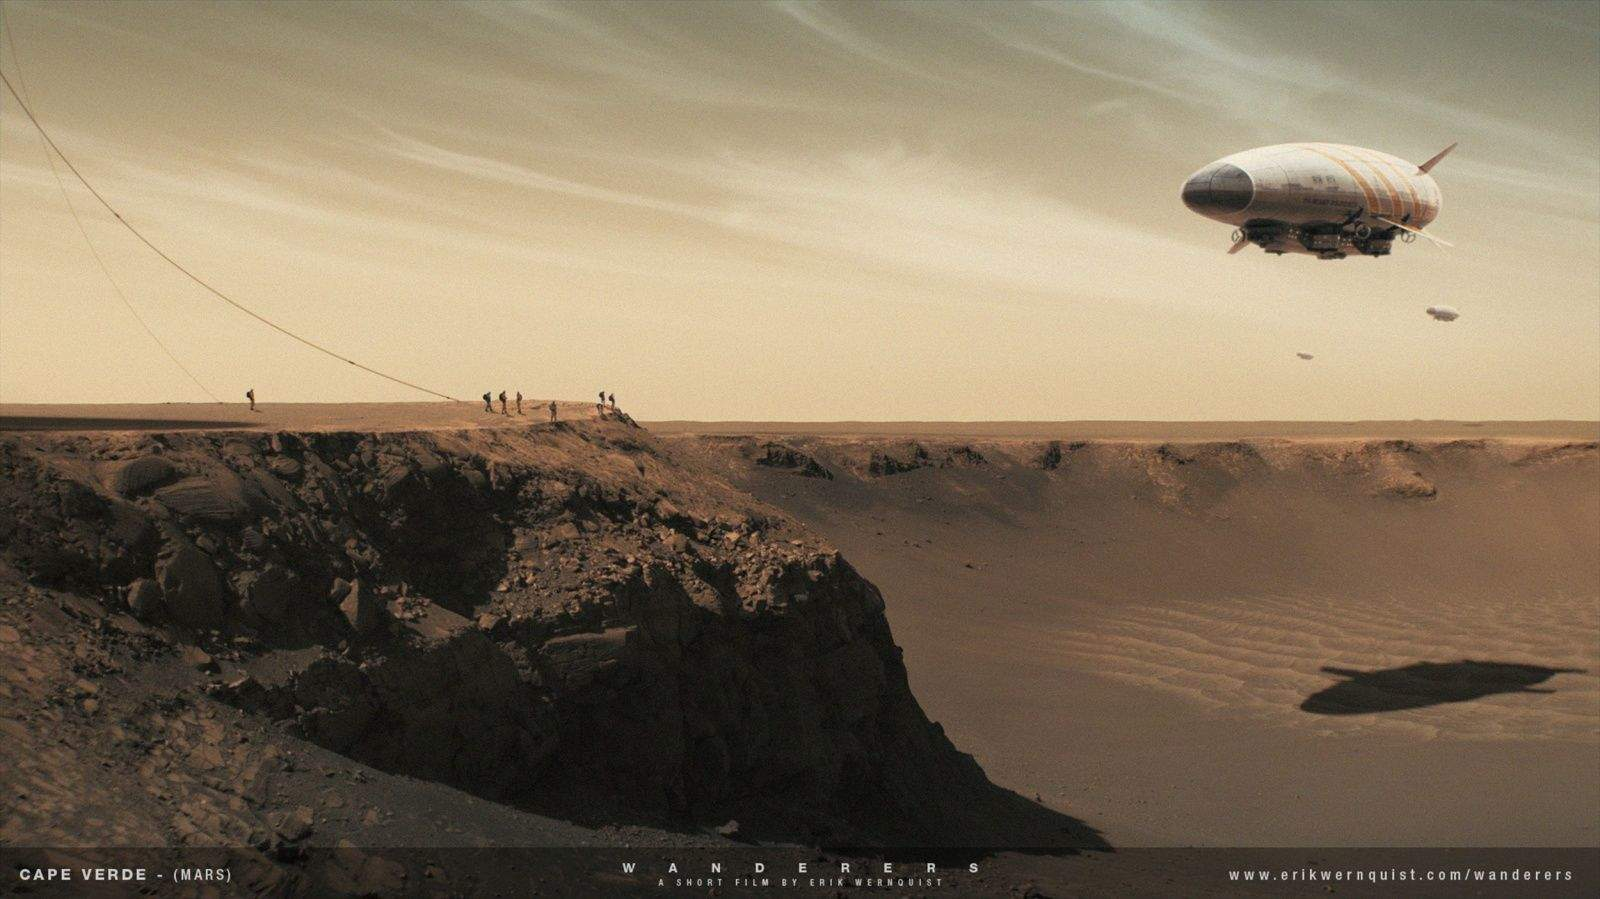 A group of people await the arrival of a few dirigibles at the edge of the Victoria Crater on Mars in Erik Werquist's short film